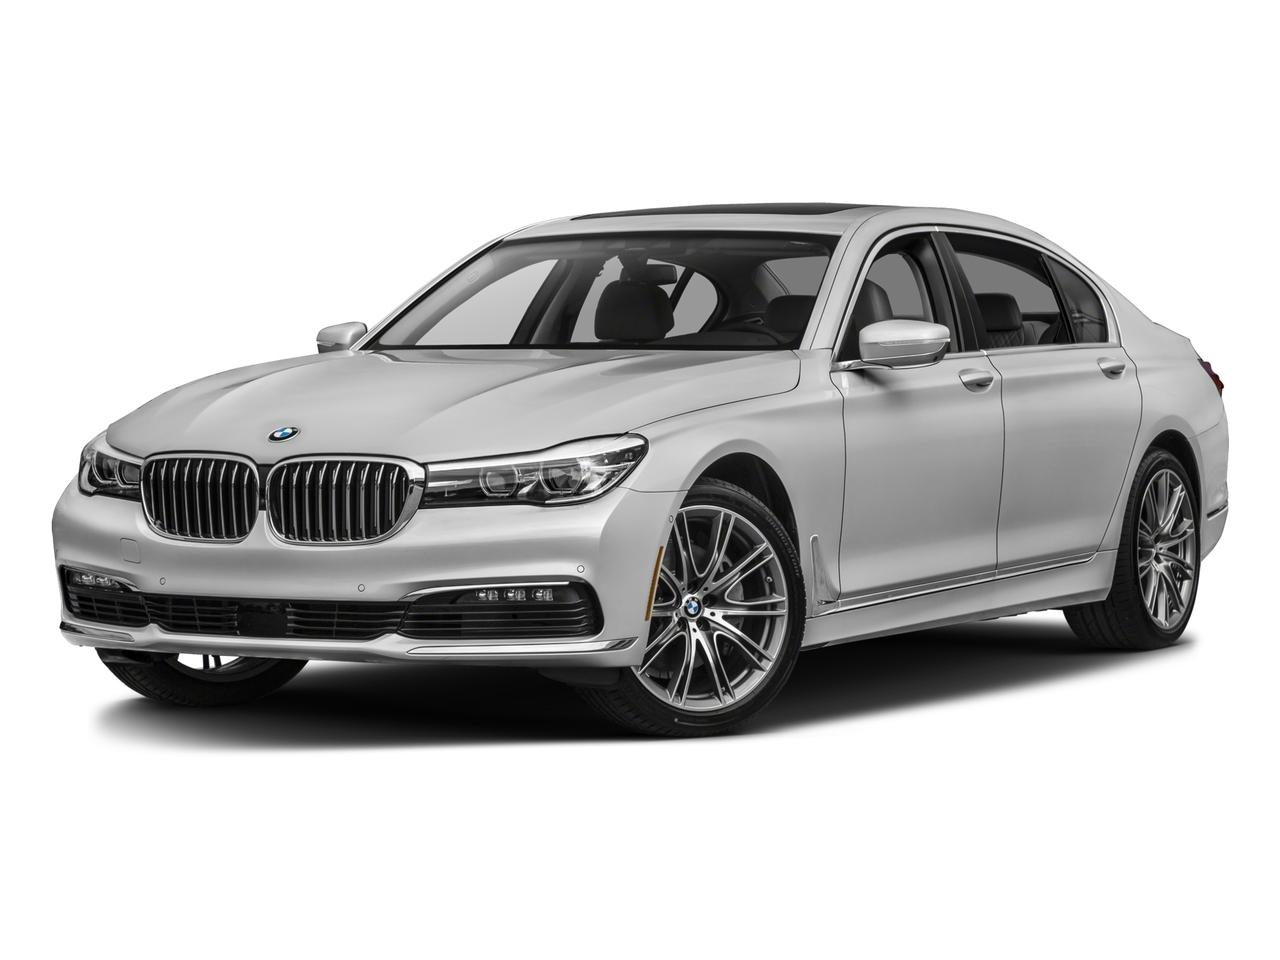 2017 BMW 740i xDrive Vehicle Photo in Baton Rouge, LA 70809